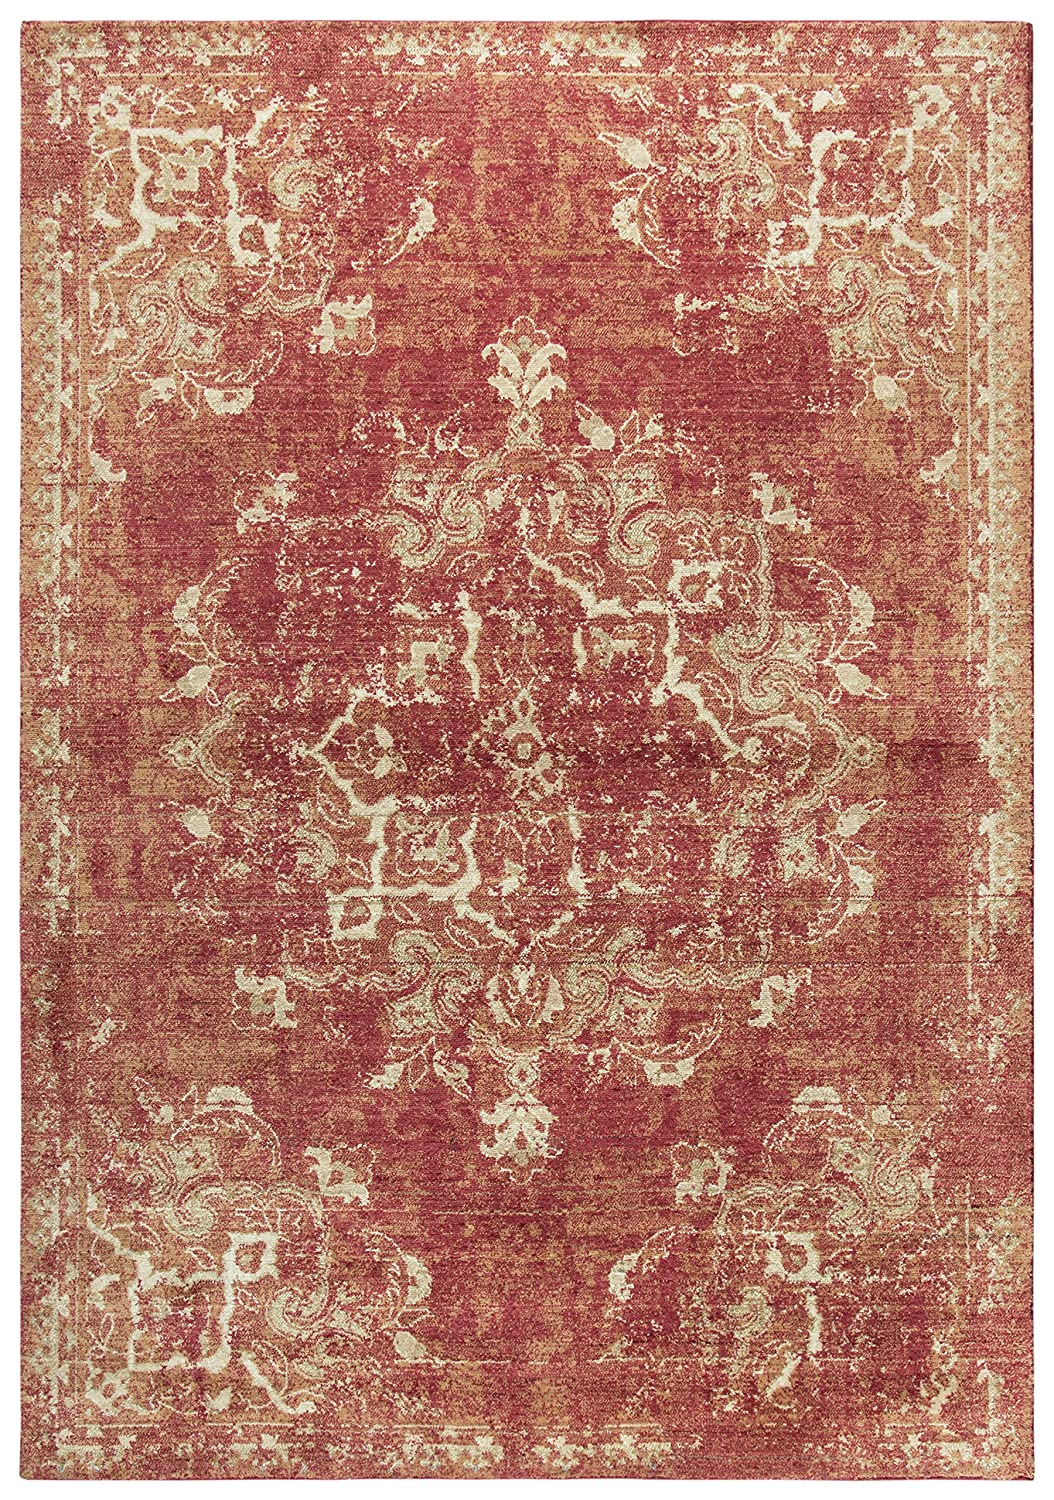 Rizzy Home ES6147 Euphaeidae Power-Loomed Area Rug, Red, 3' x 5'